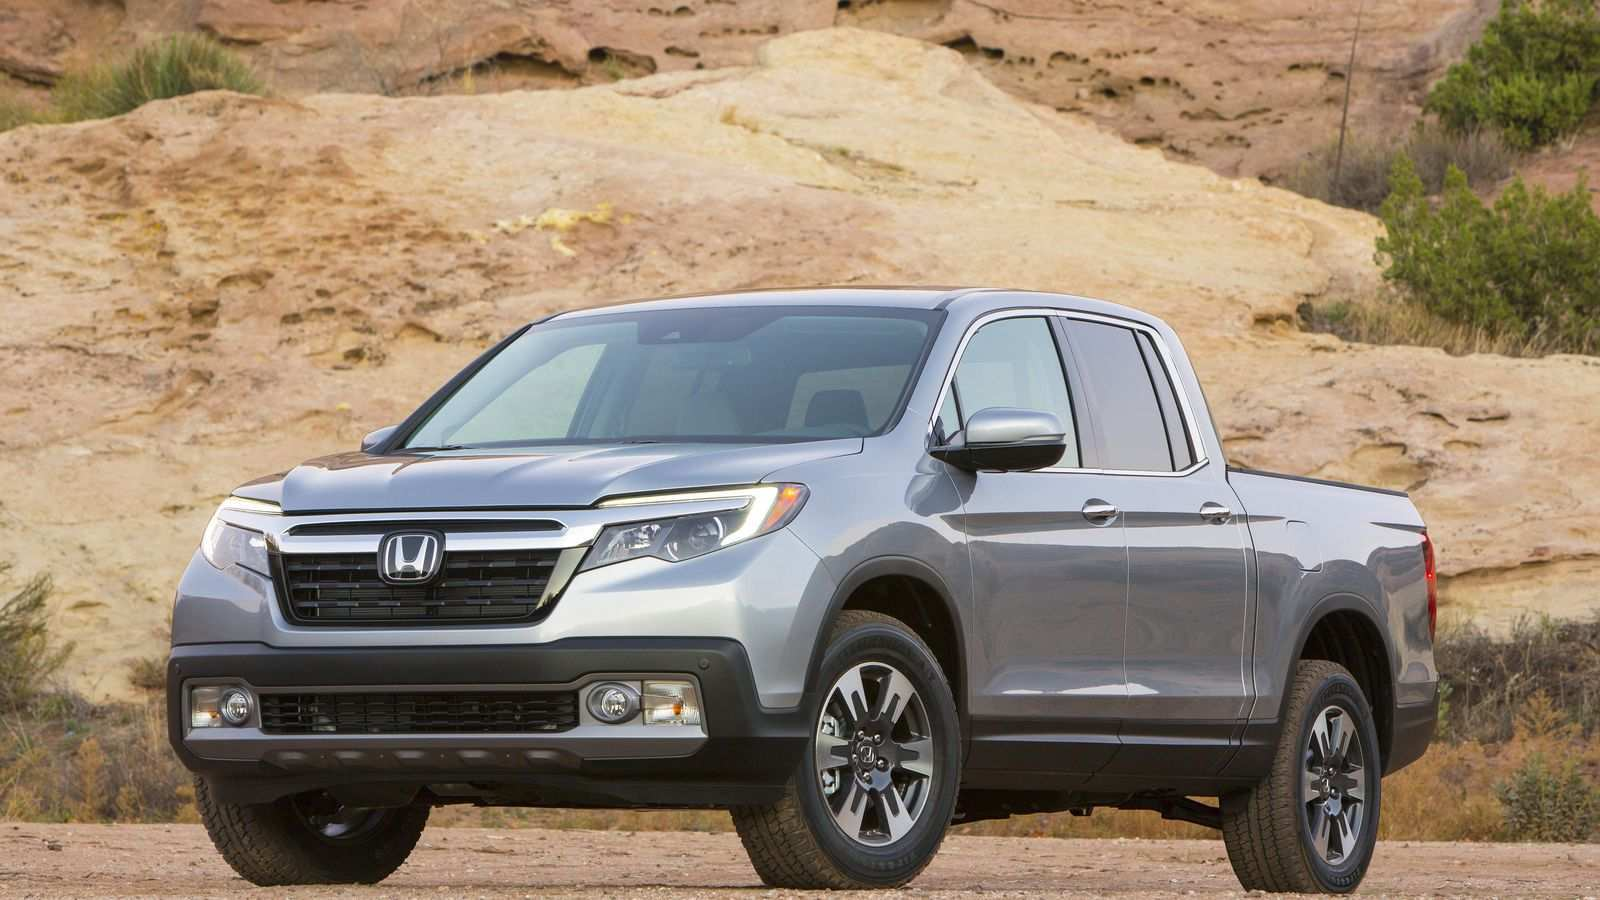 83 The Honda Ridgeline News 2020 Price for Honda Ridgeline News 2020